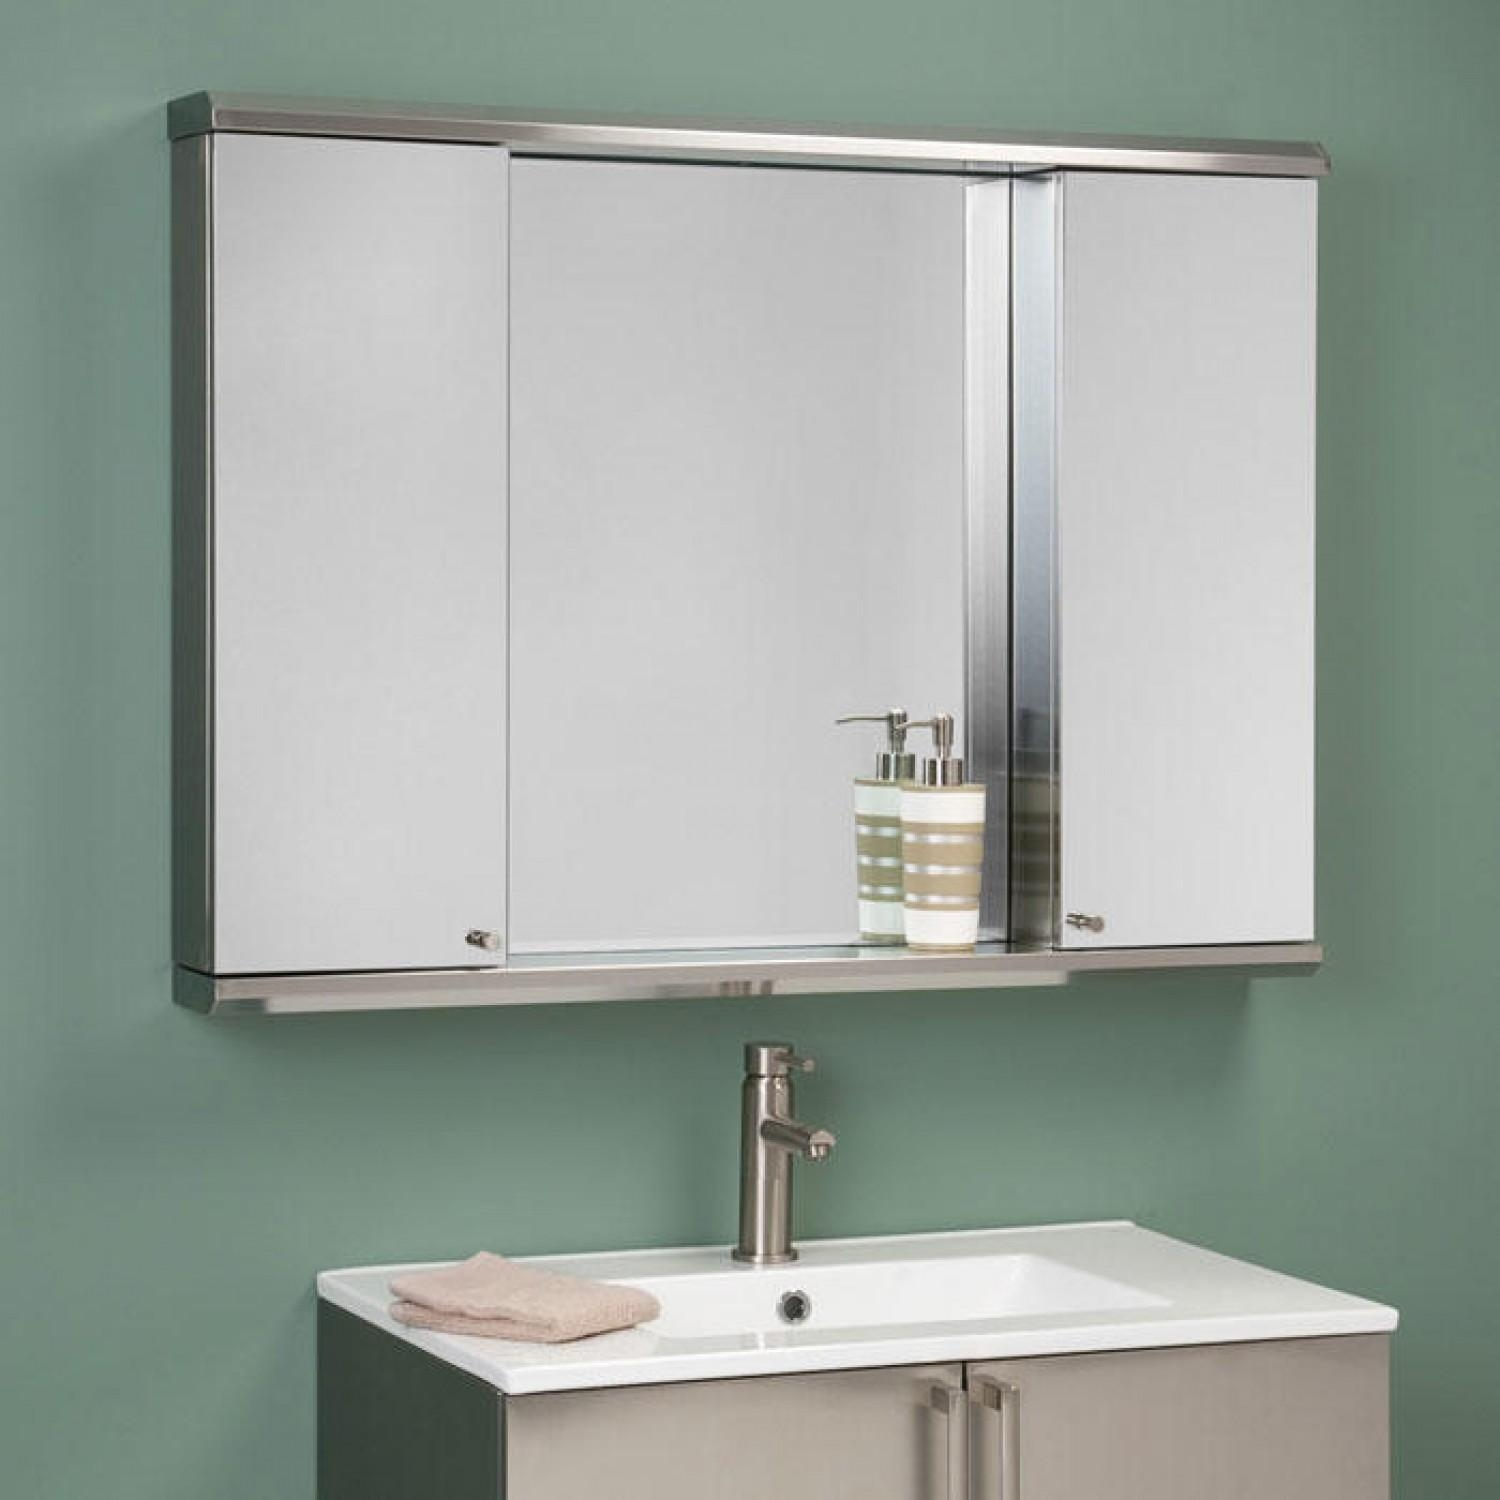 20 Best Bathroom Medicine Cabinets With Mirrors Mirror Ideas